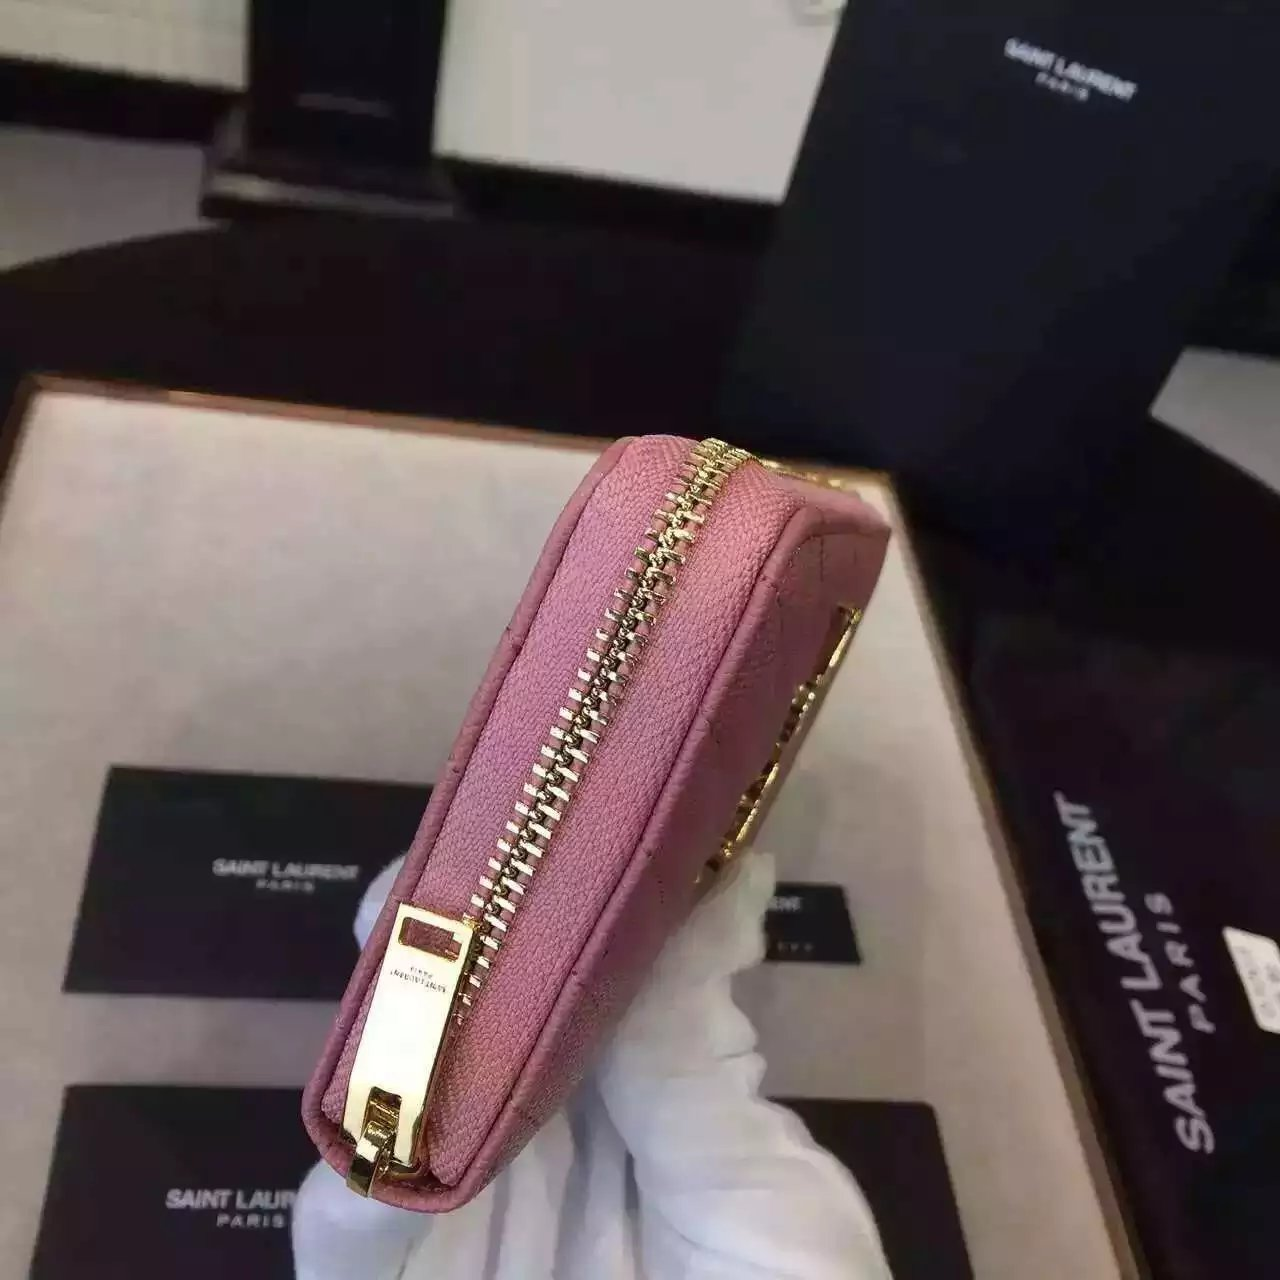 2016 Cheap YSL Out Sale with Free Shipping-Saint Laurent Monogram Zip Around Wallet in Pink Grain De Poudre Matelasse Textured Leather